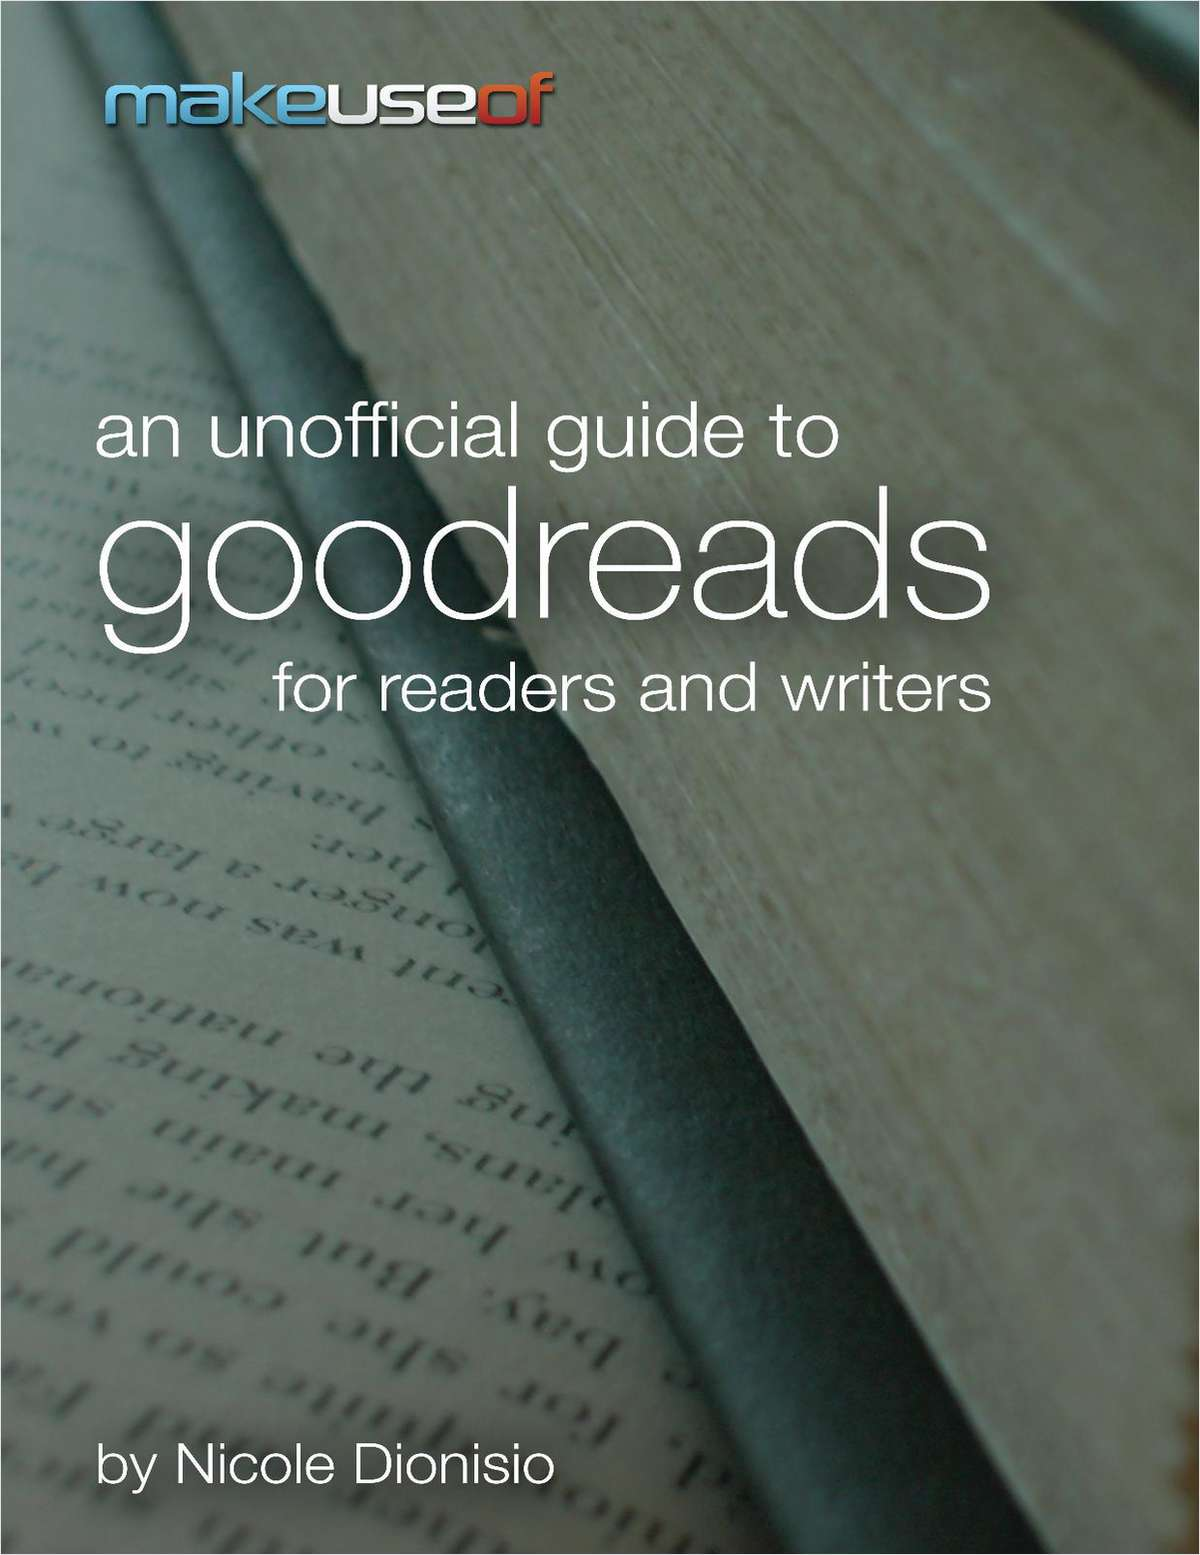 An Unofficial Guide to Goodreads for Readers and Writers